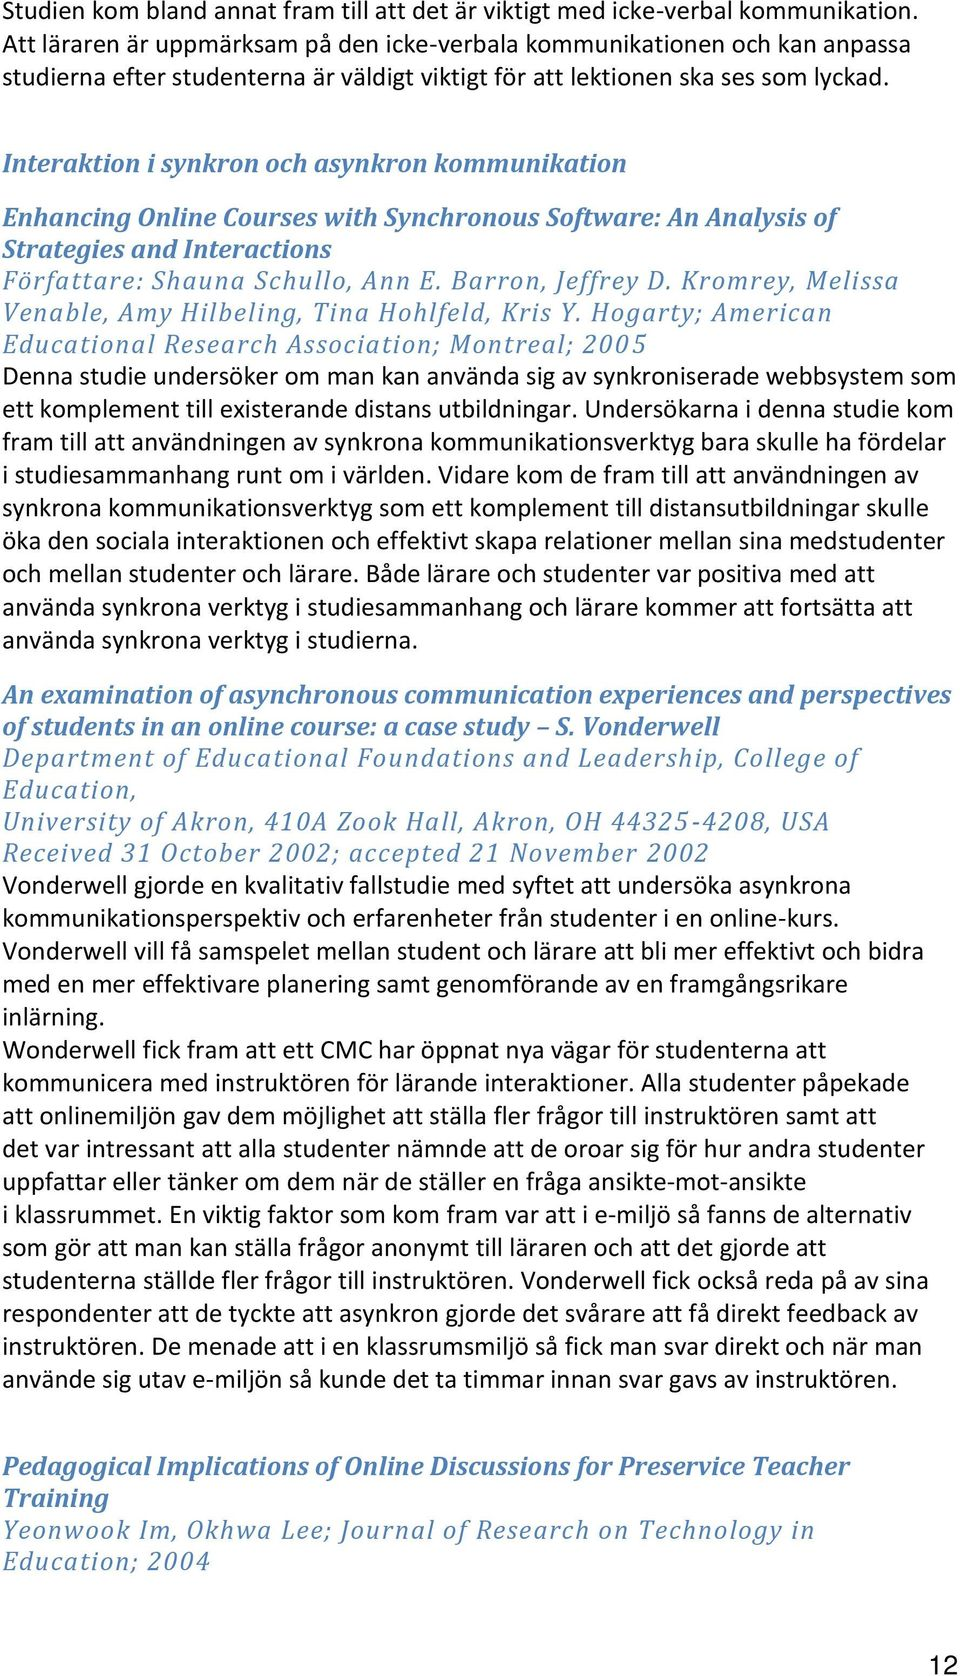 Interaktion i synkron och asynkron kommunikation Enhancing Online Courses with Synchronous Software: An Analysis of Strategies and Interactions Författare: Shauna Schullo, Ann E. Barron, Jeffrey D.